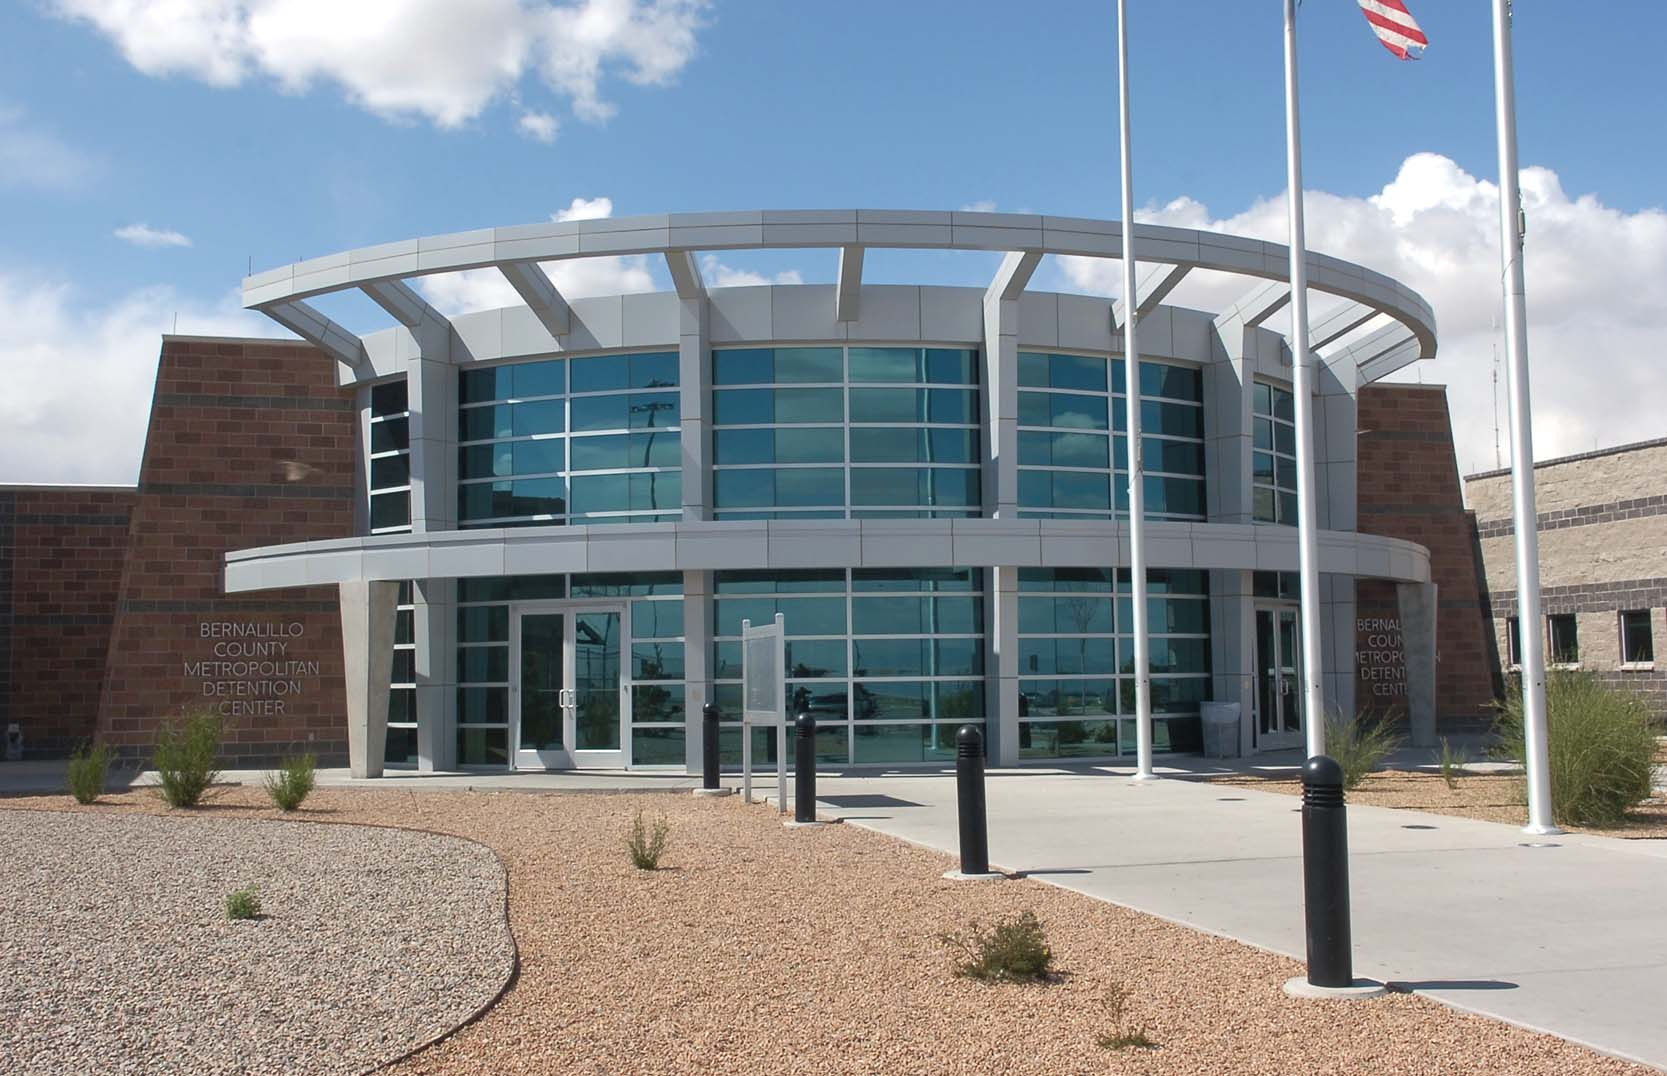 bernallilo county courthouse adult detention records